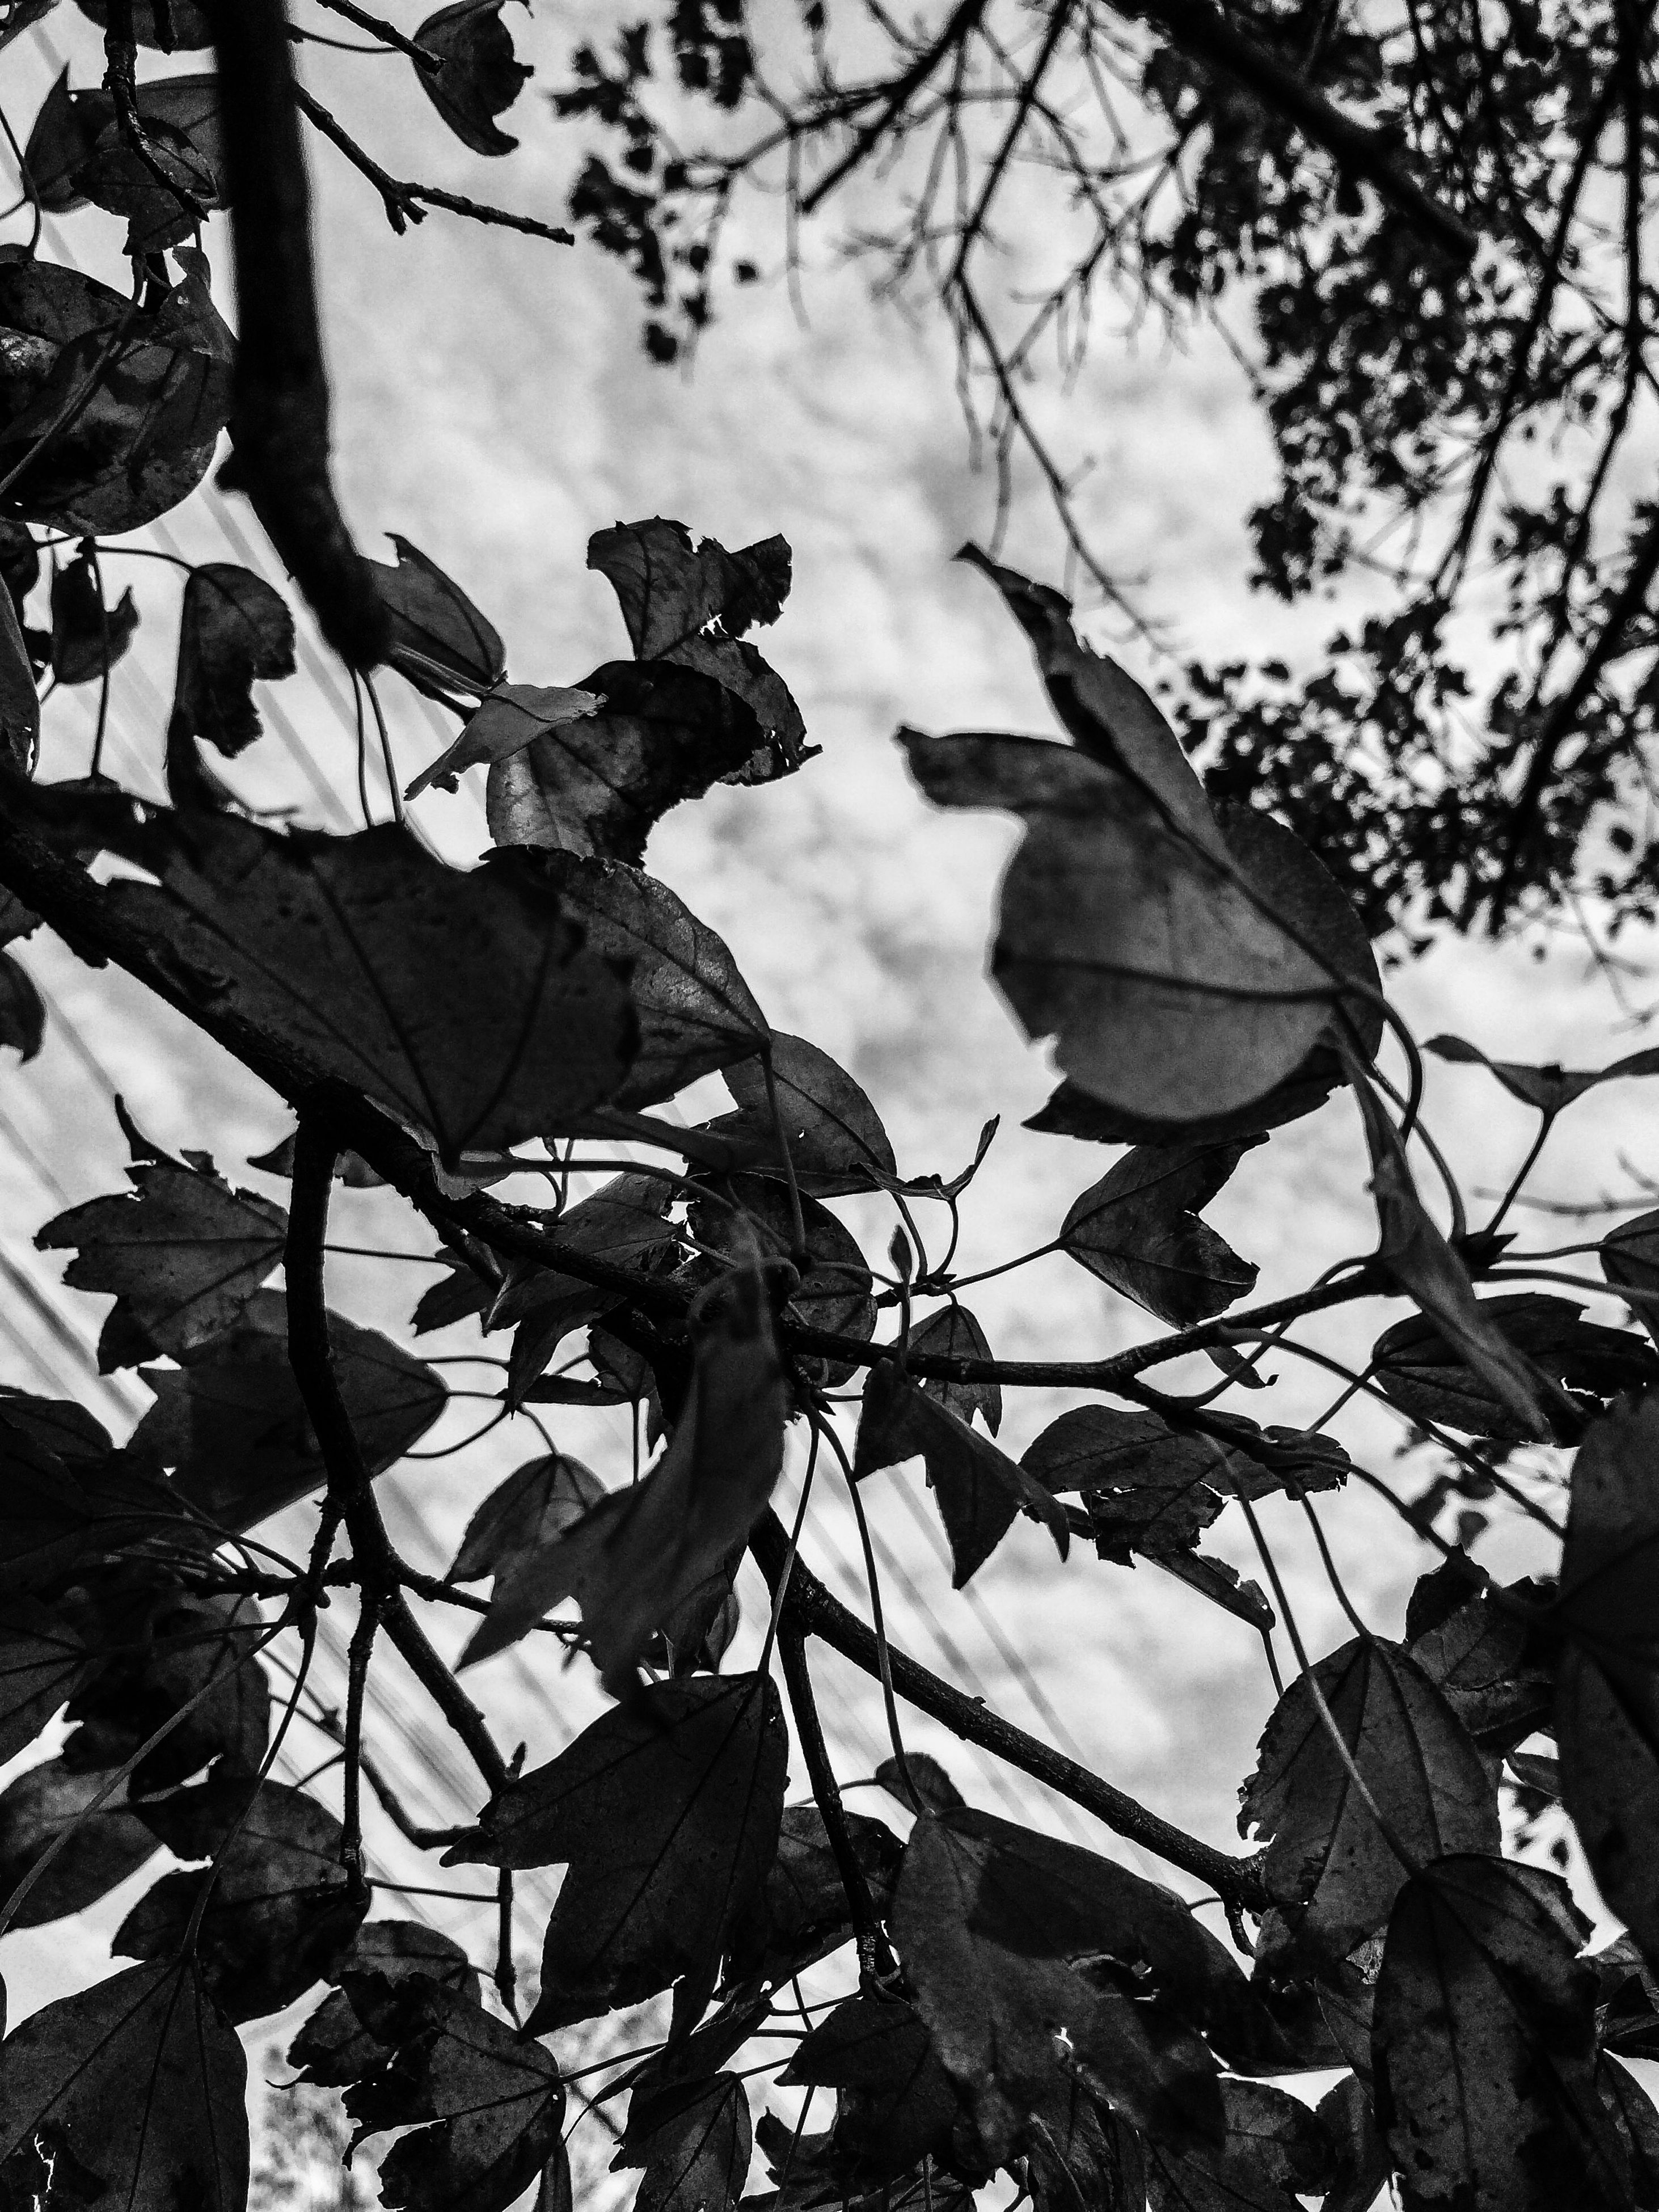 leaf, sky, low angle view, branch, tree, cloud - sky, nature, growth, outdoors, day, cloudy, no people, cloud, close-up, plant, leaves, built structure, dry, sunlight, tranquility